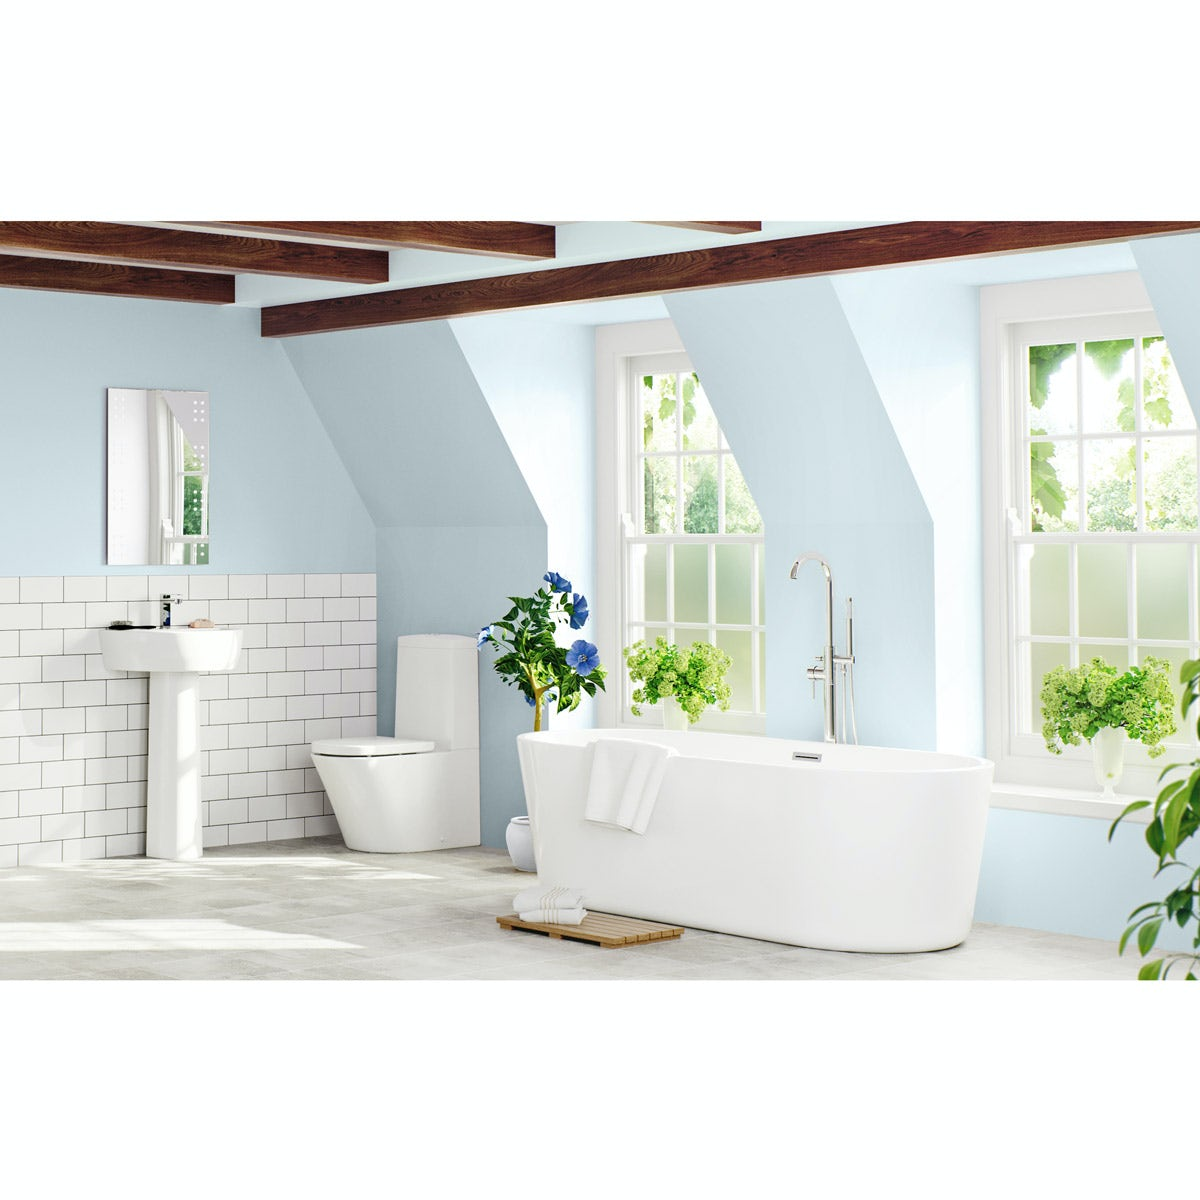 Mode Tate luxury bathroom suite with freestanding bath 1500 x 700